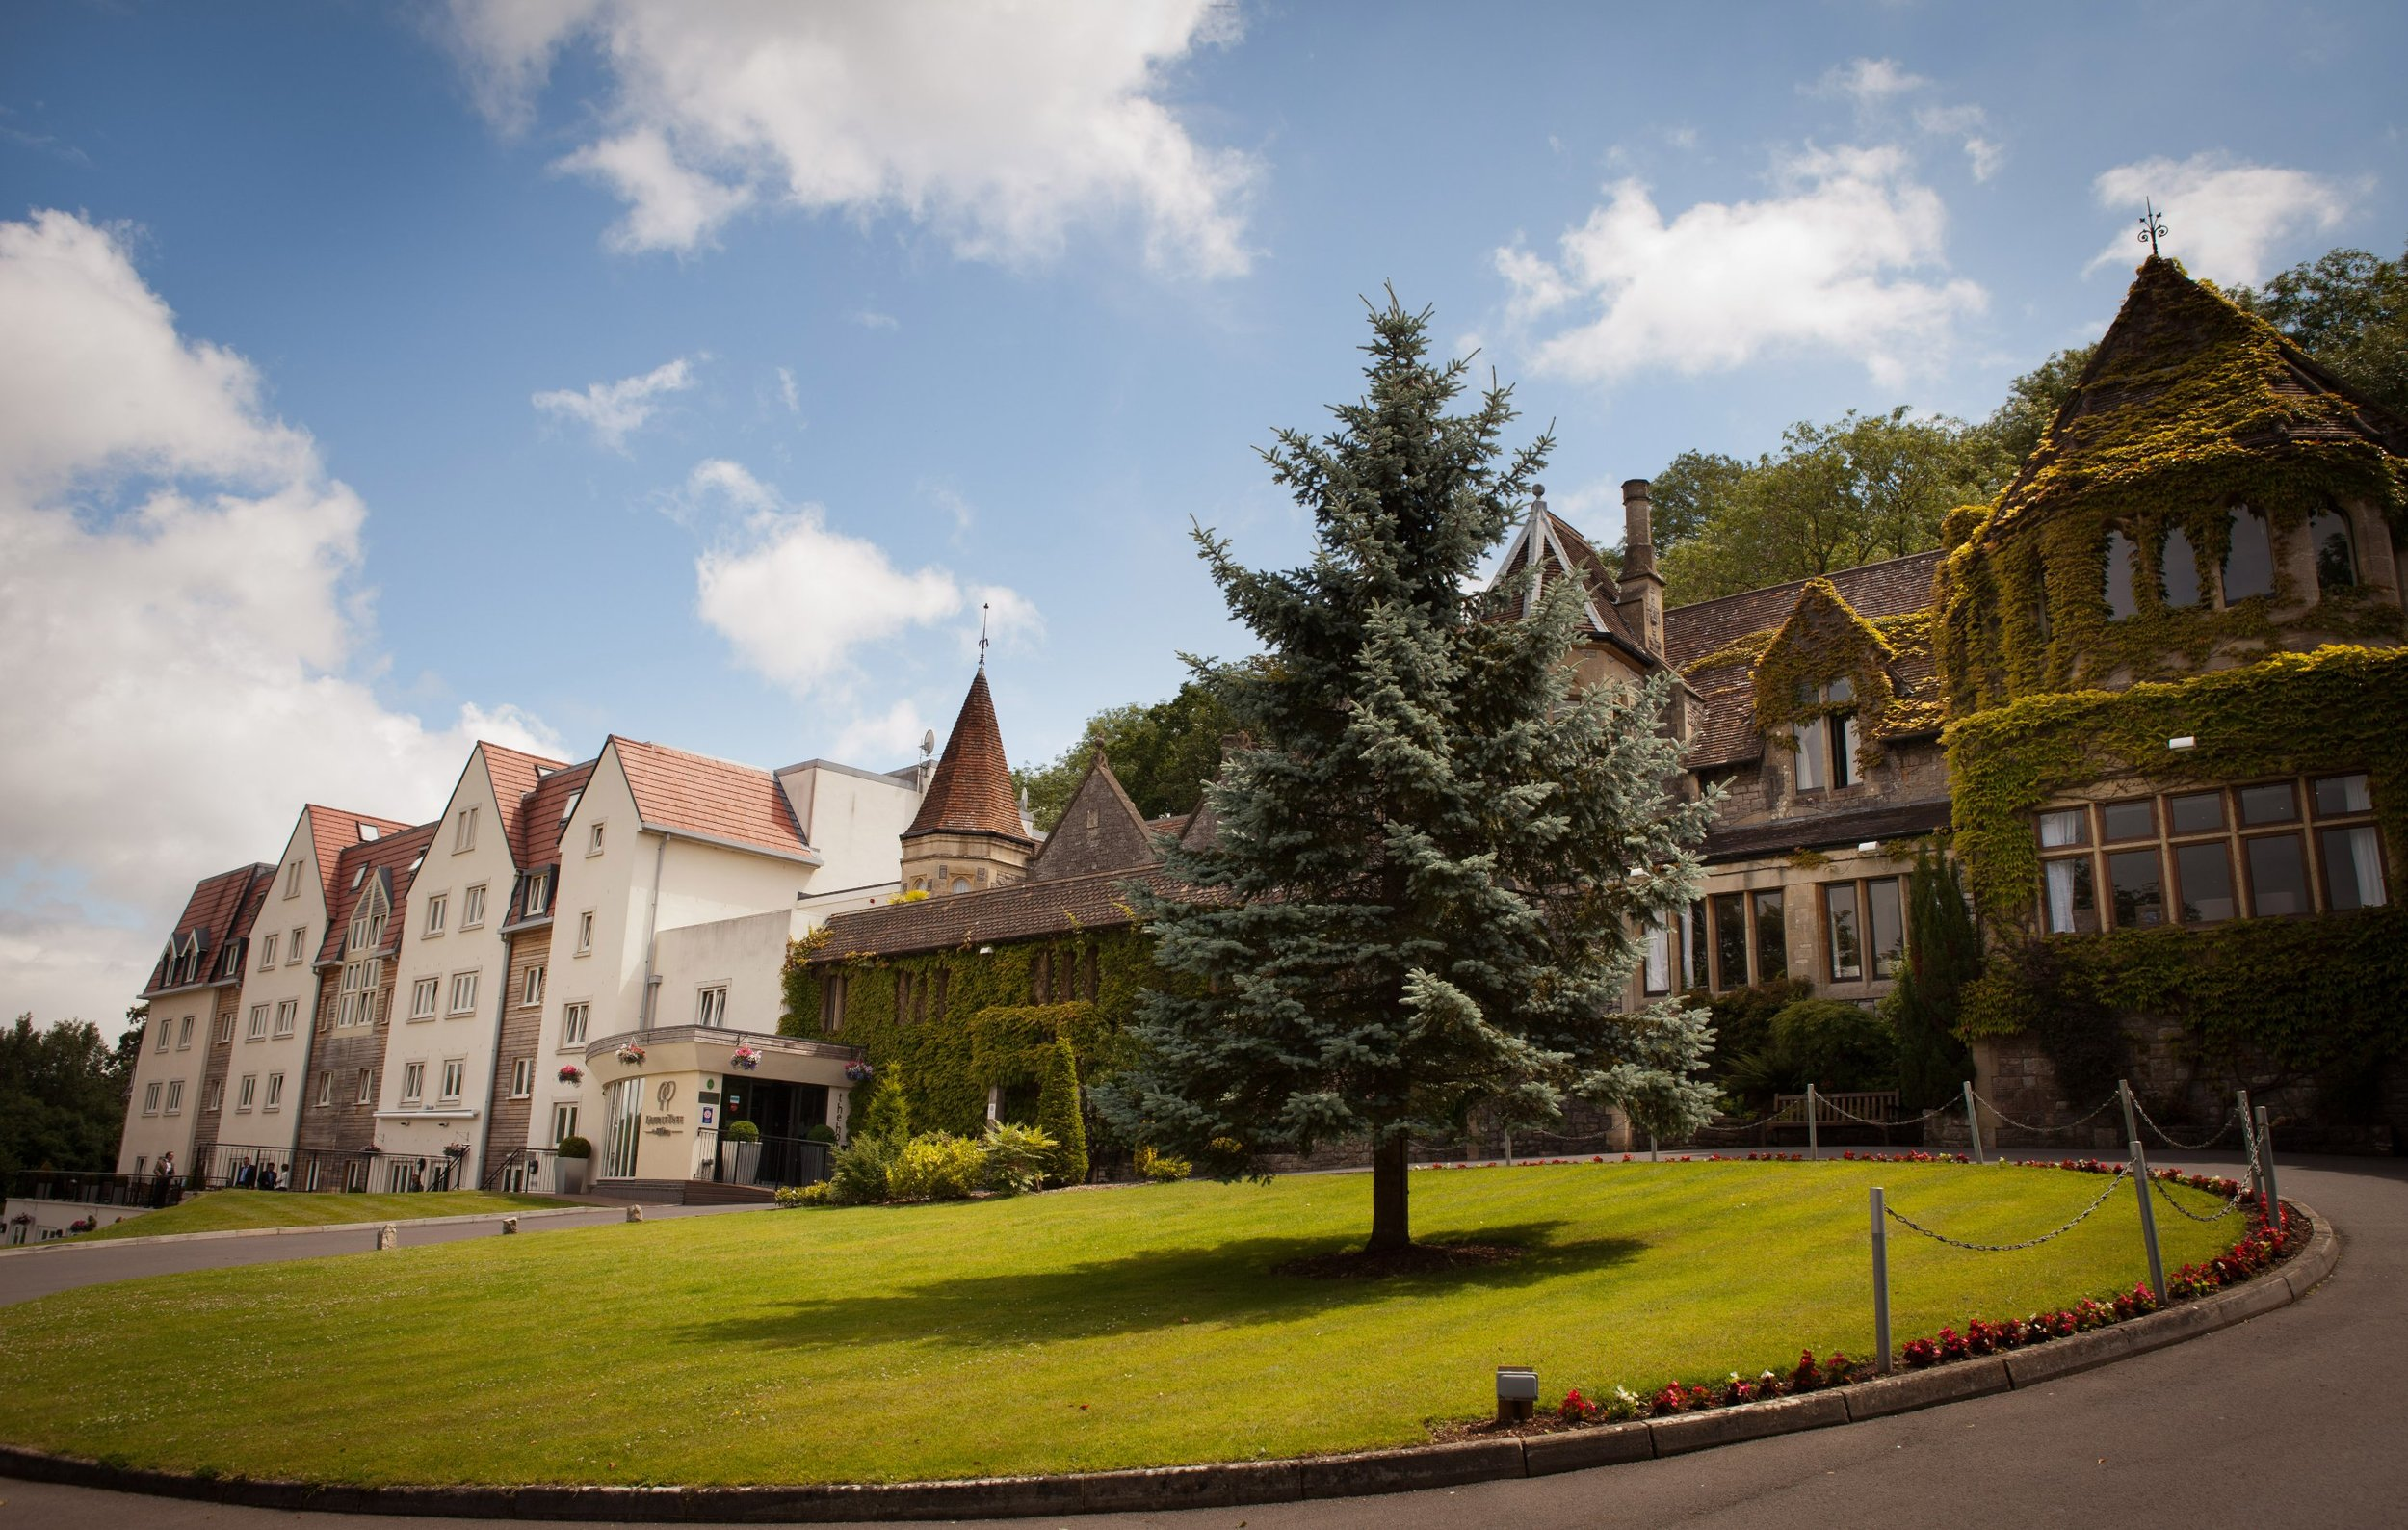 DoubleTree by Hilton Bristol - Worldwide Hilton Spirit of Care Awards, Two in 2012 & 2013